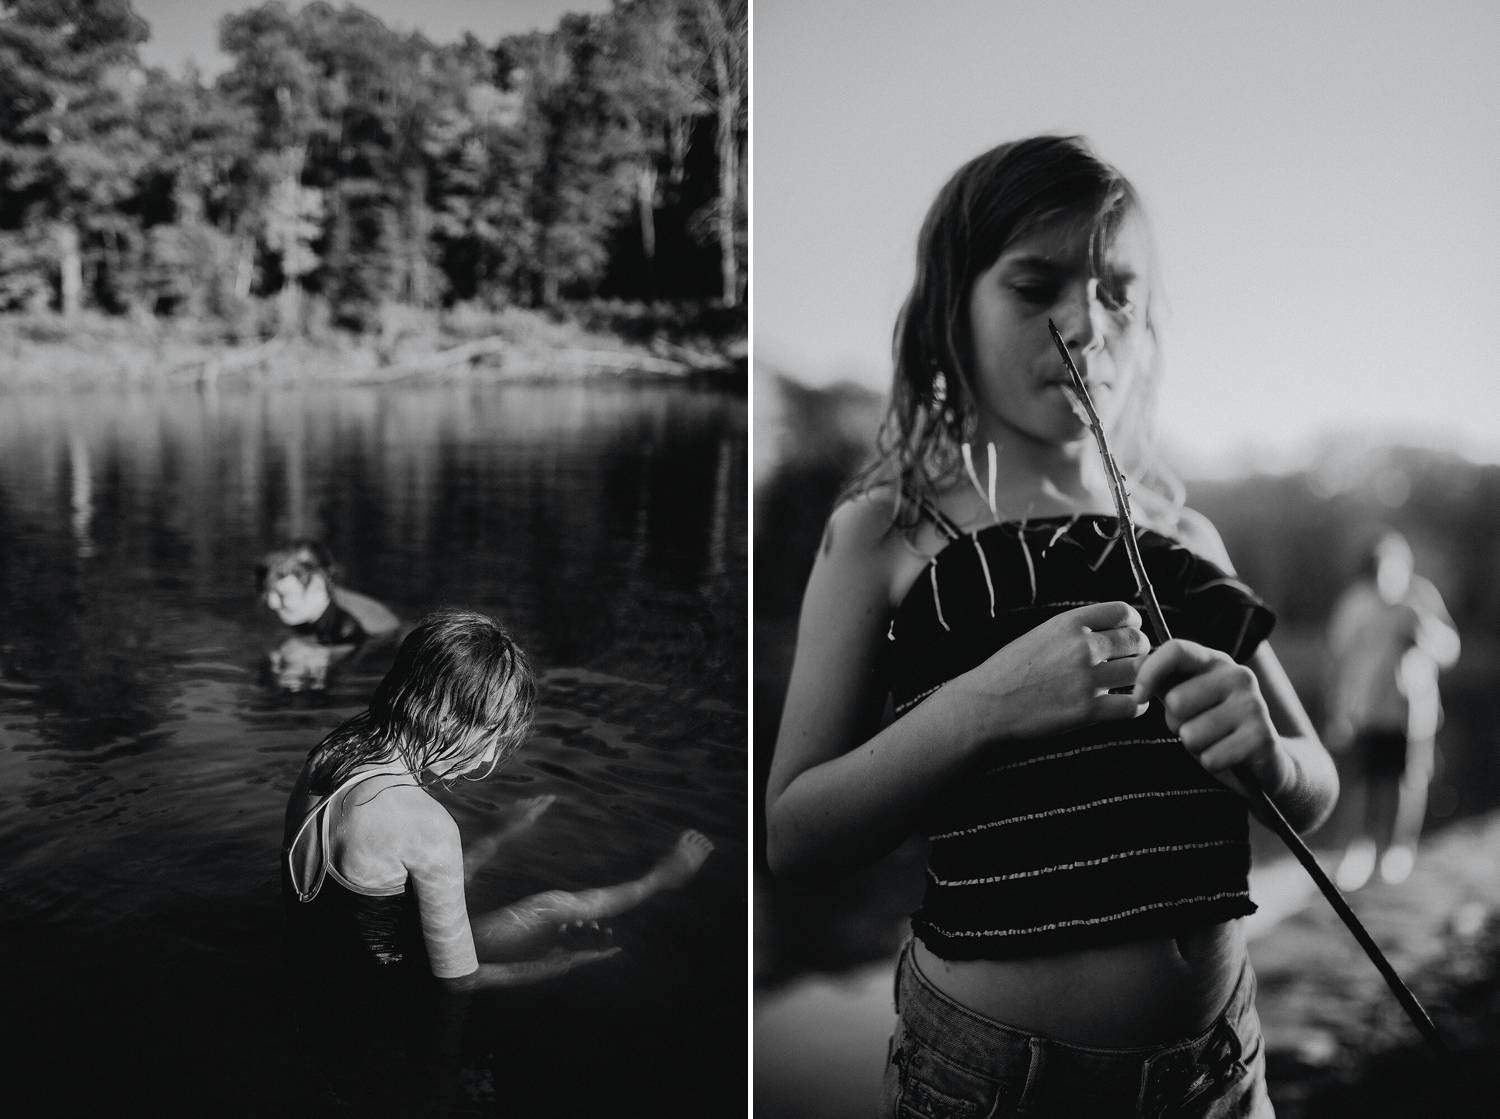 Photos: Joni Burtt's natural black and white images showcase children playing intently in a quiet lake.